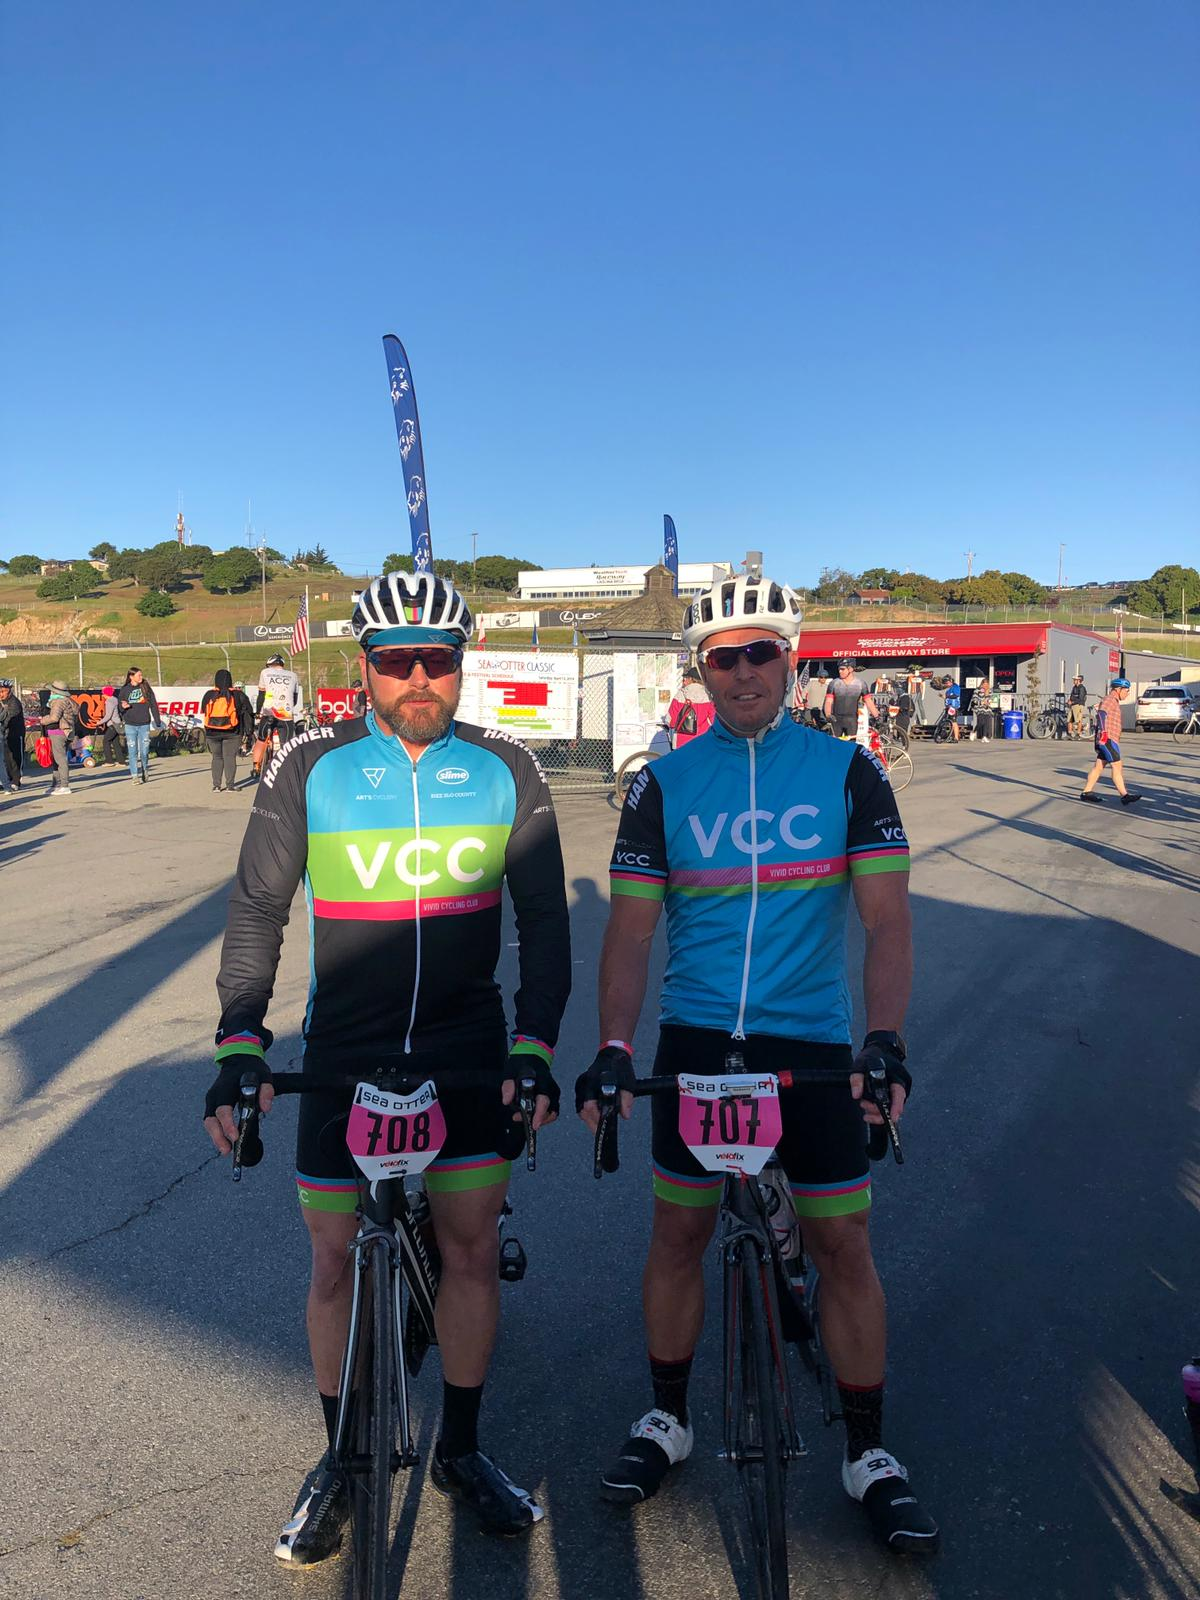 Eric Streiff (left) and another VCC Joe Valencia (right)